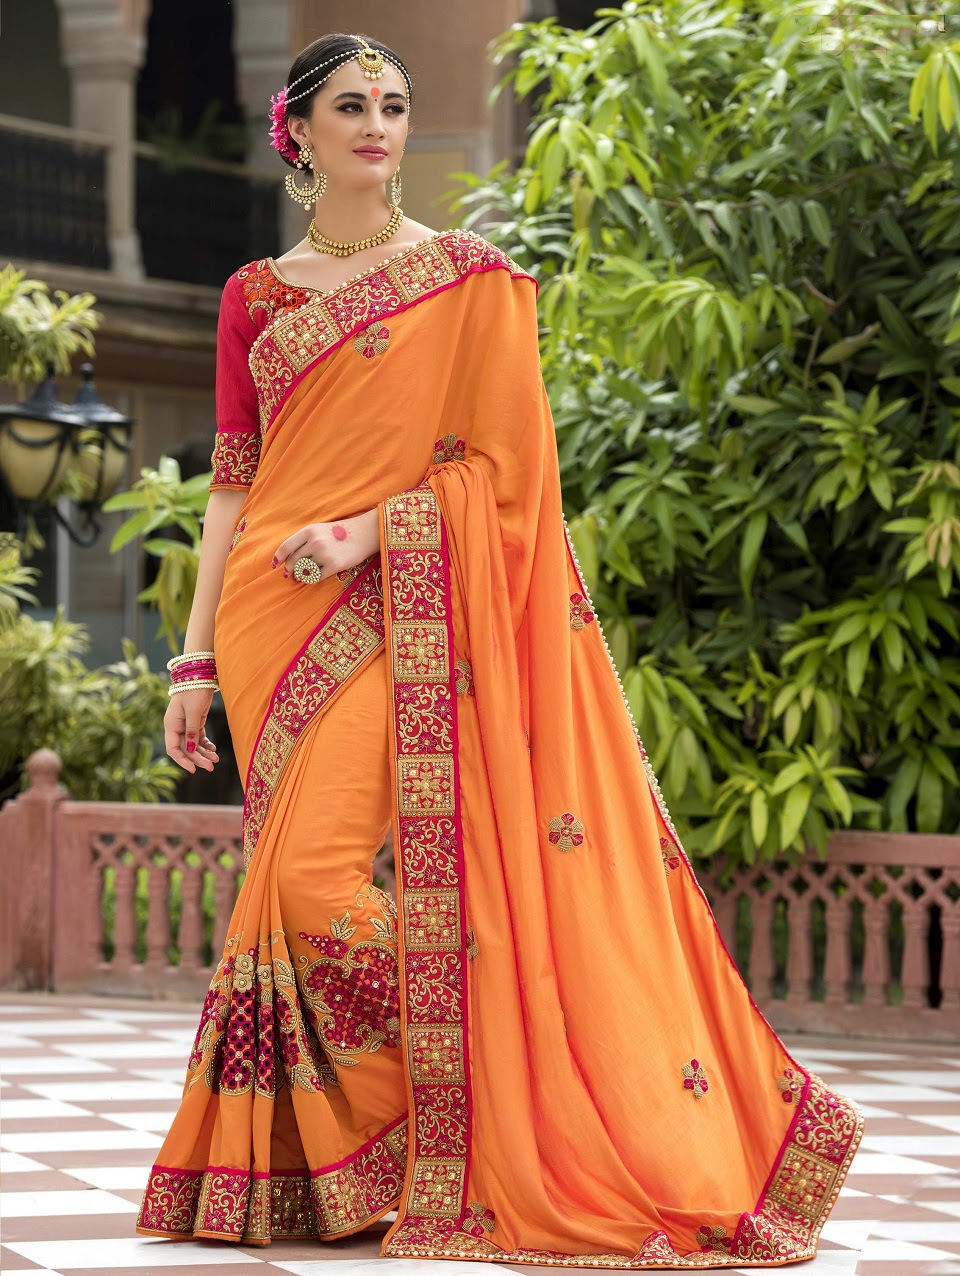 Indian Wedding Saree Latest Designs Trends Collection 2017 2018 16